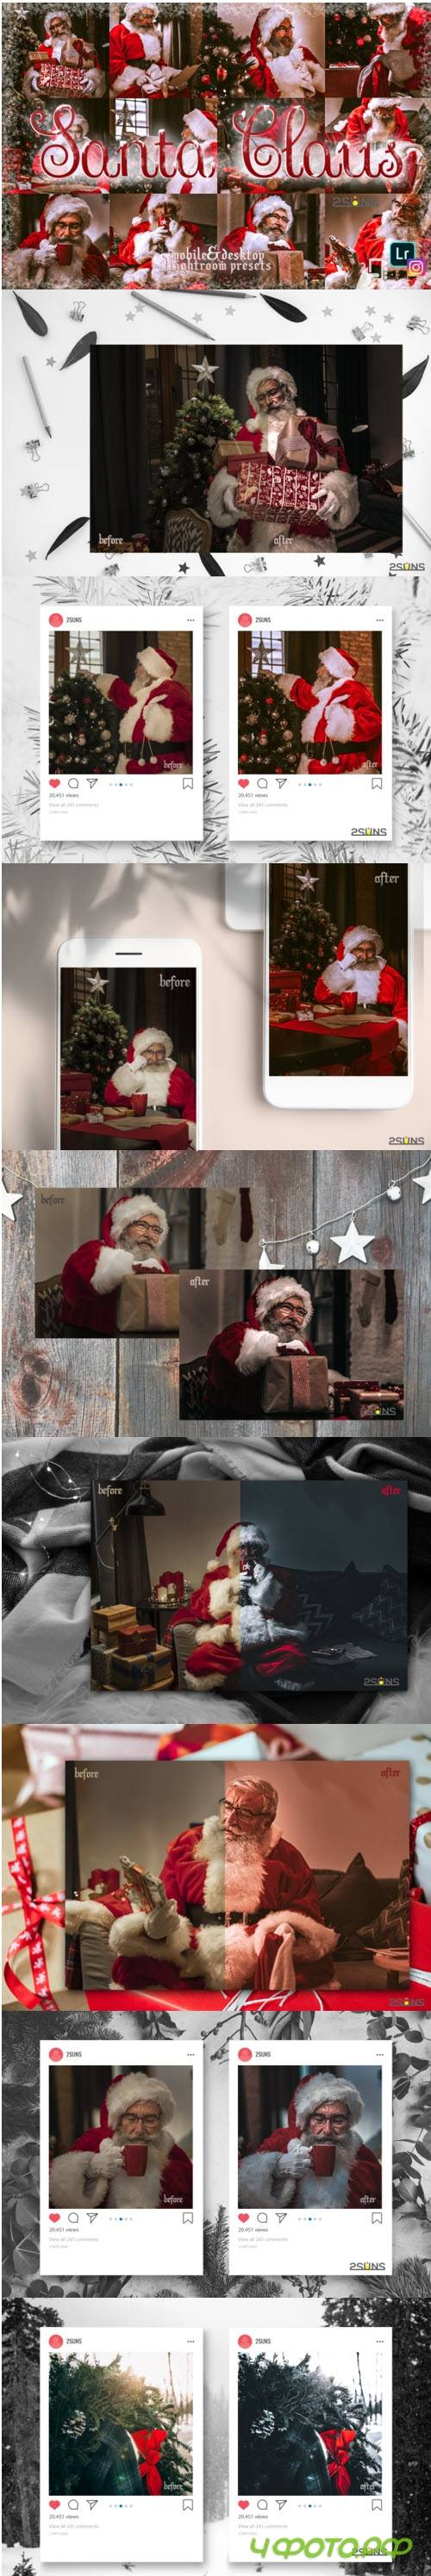 5 Santa Claus lightroom presets winter preset Christmas - 392807